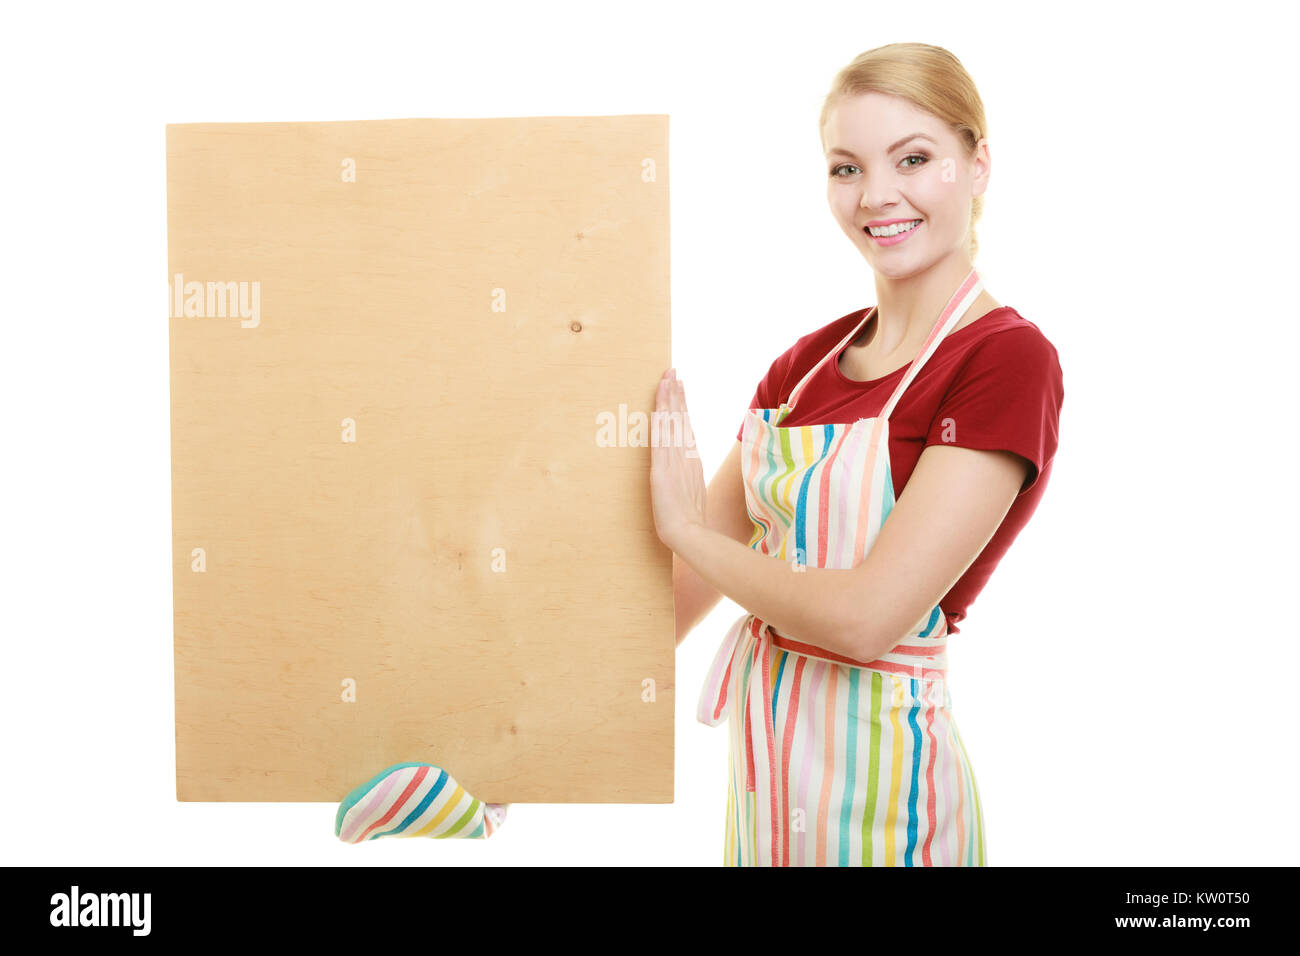 housewife in kitchen apron or small business owner with empty blank banner sign for restaurant menu recipe. Girl Stock Photo